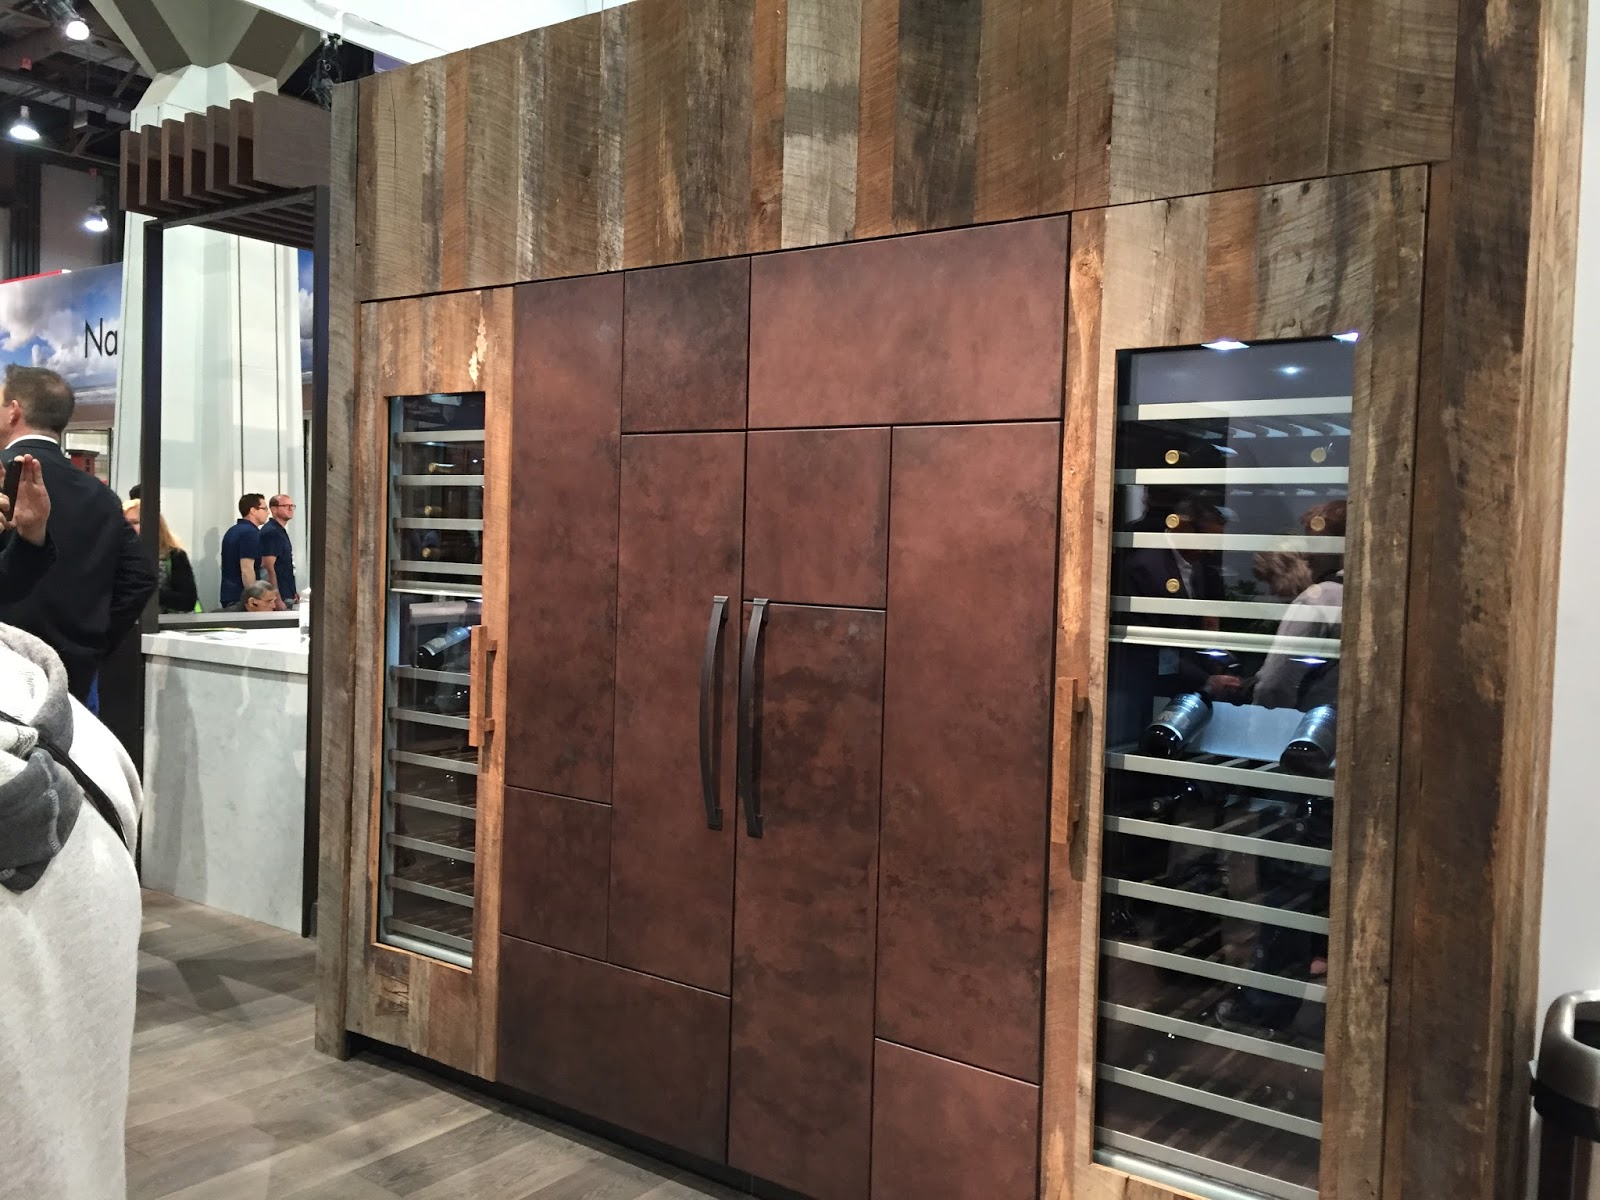 Ready Made Pillars : Gandul appliance innovations you should know about